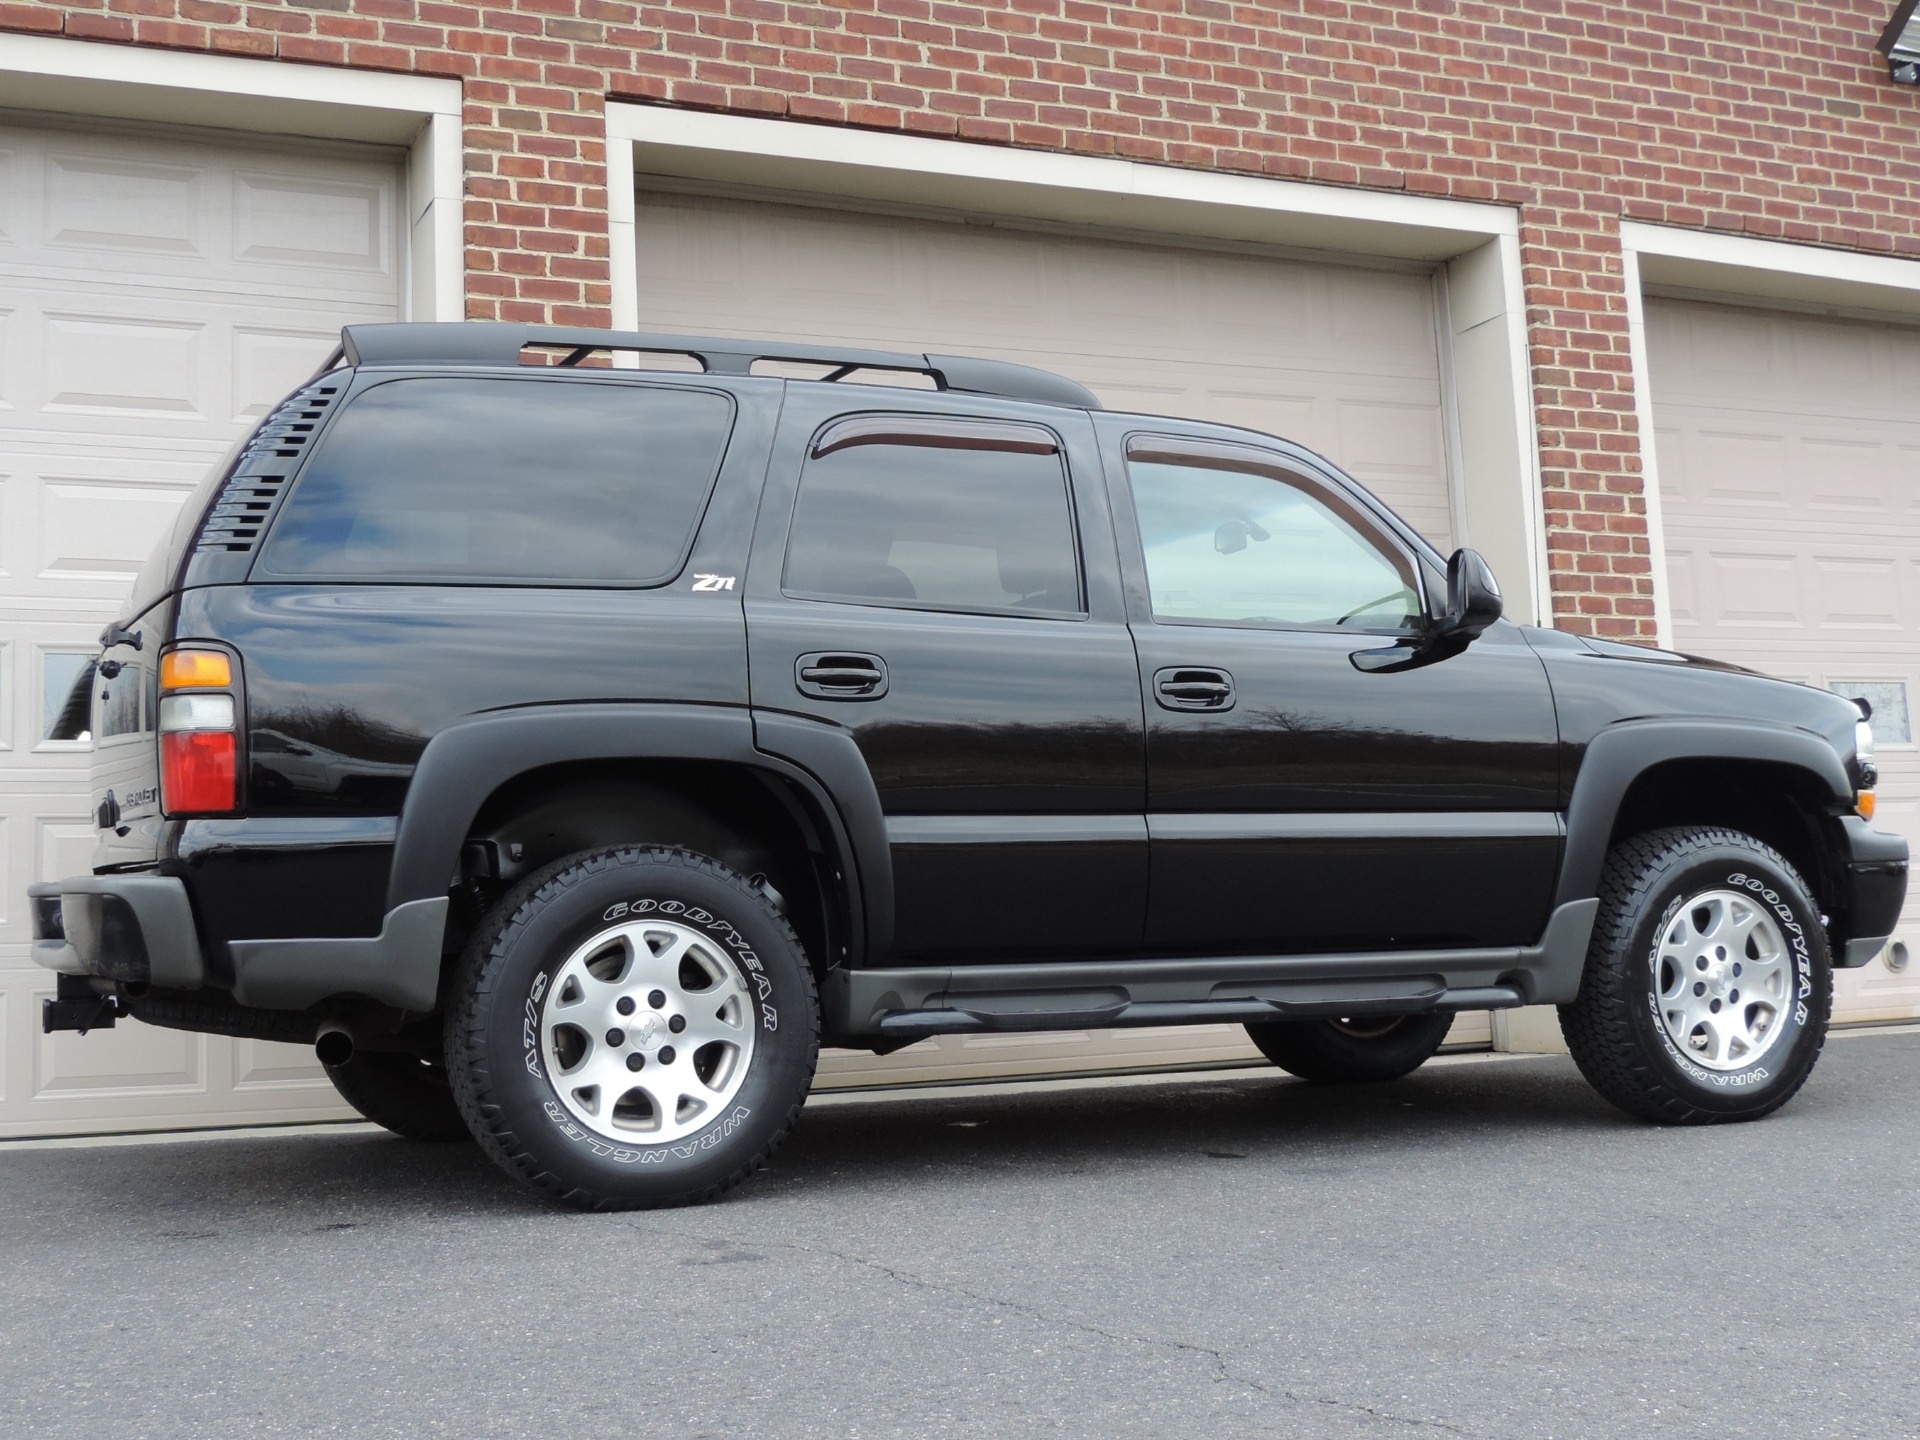 tahoe 2004 z71 chevrolet side anti theft front system mirror turn door power mirrors adjustments alarm dimming locks signals airbags